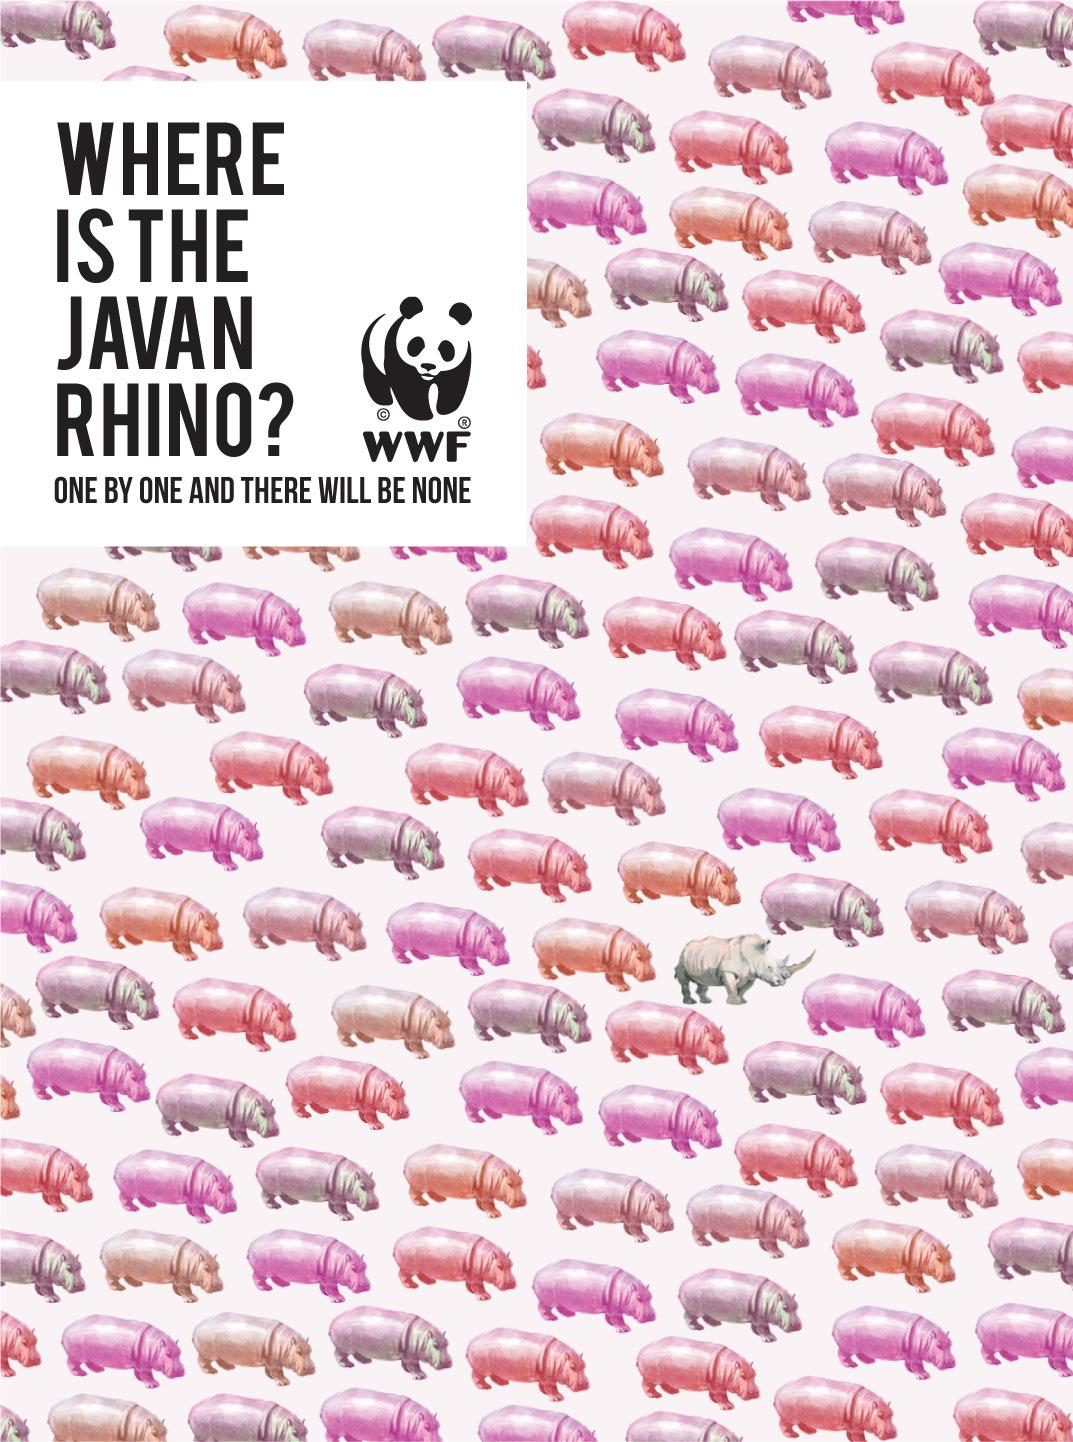 WWF: One by One There Will be None